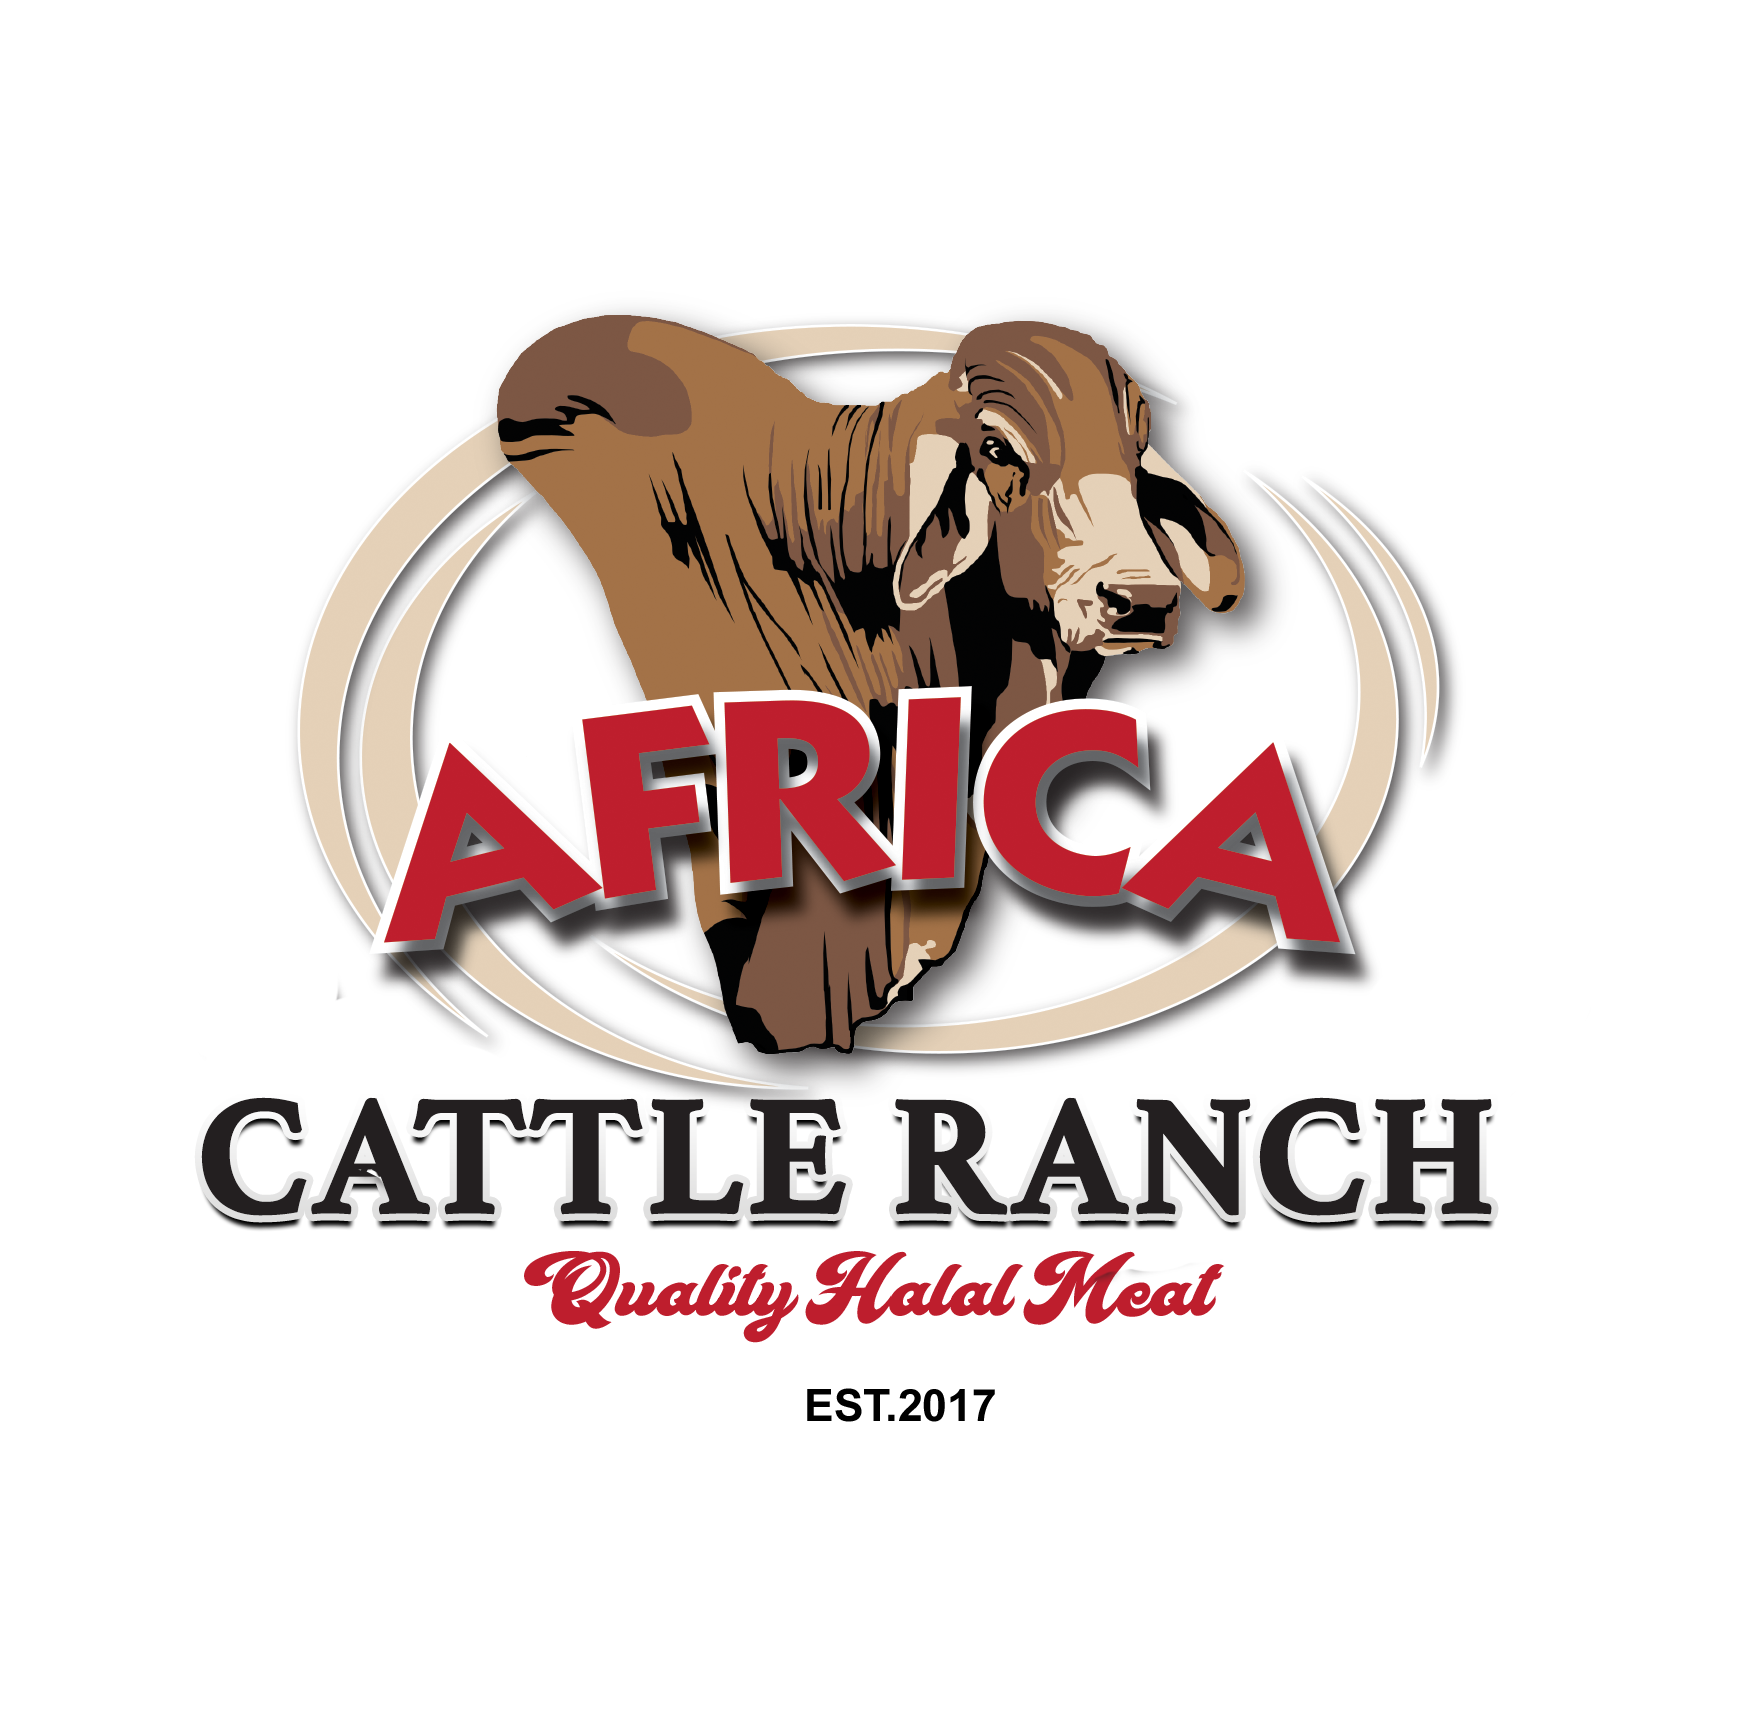 Africa Cattle Ranches